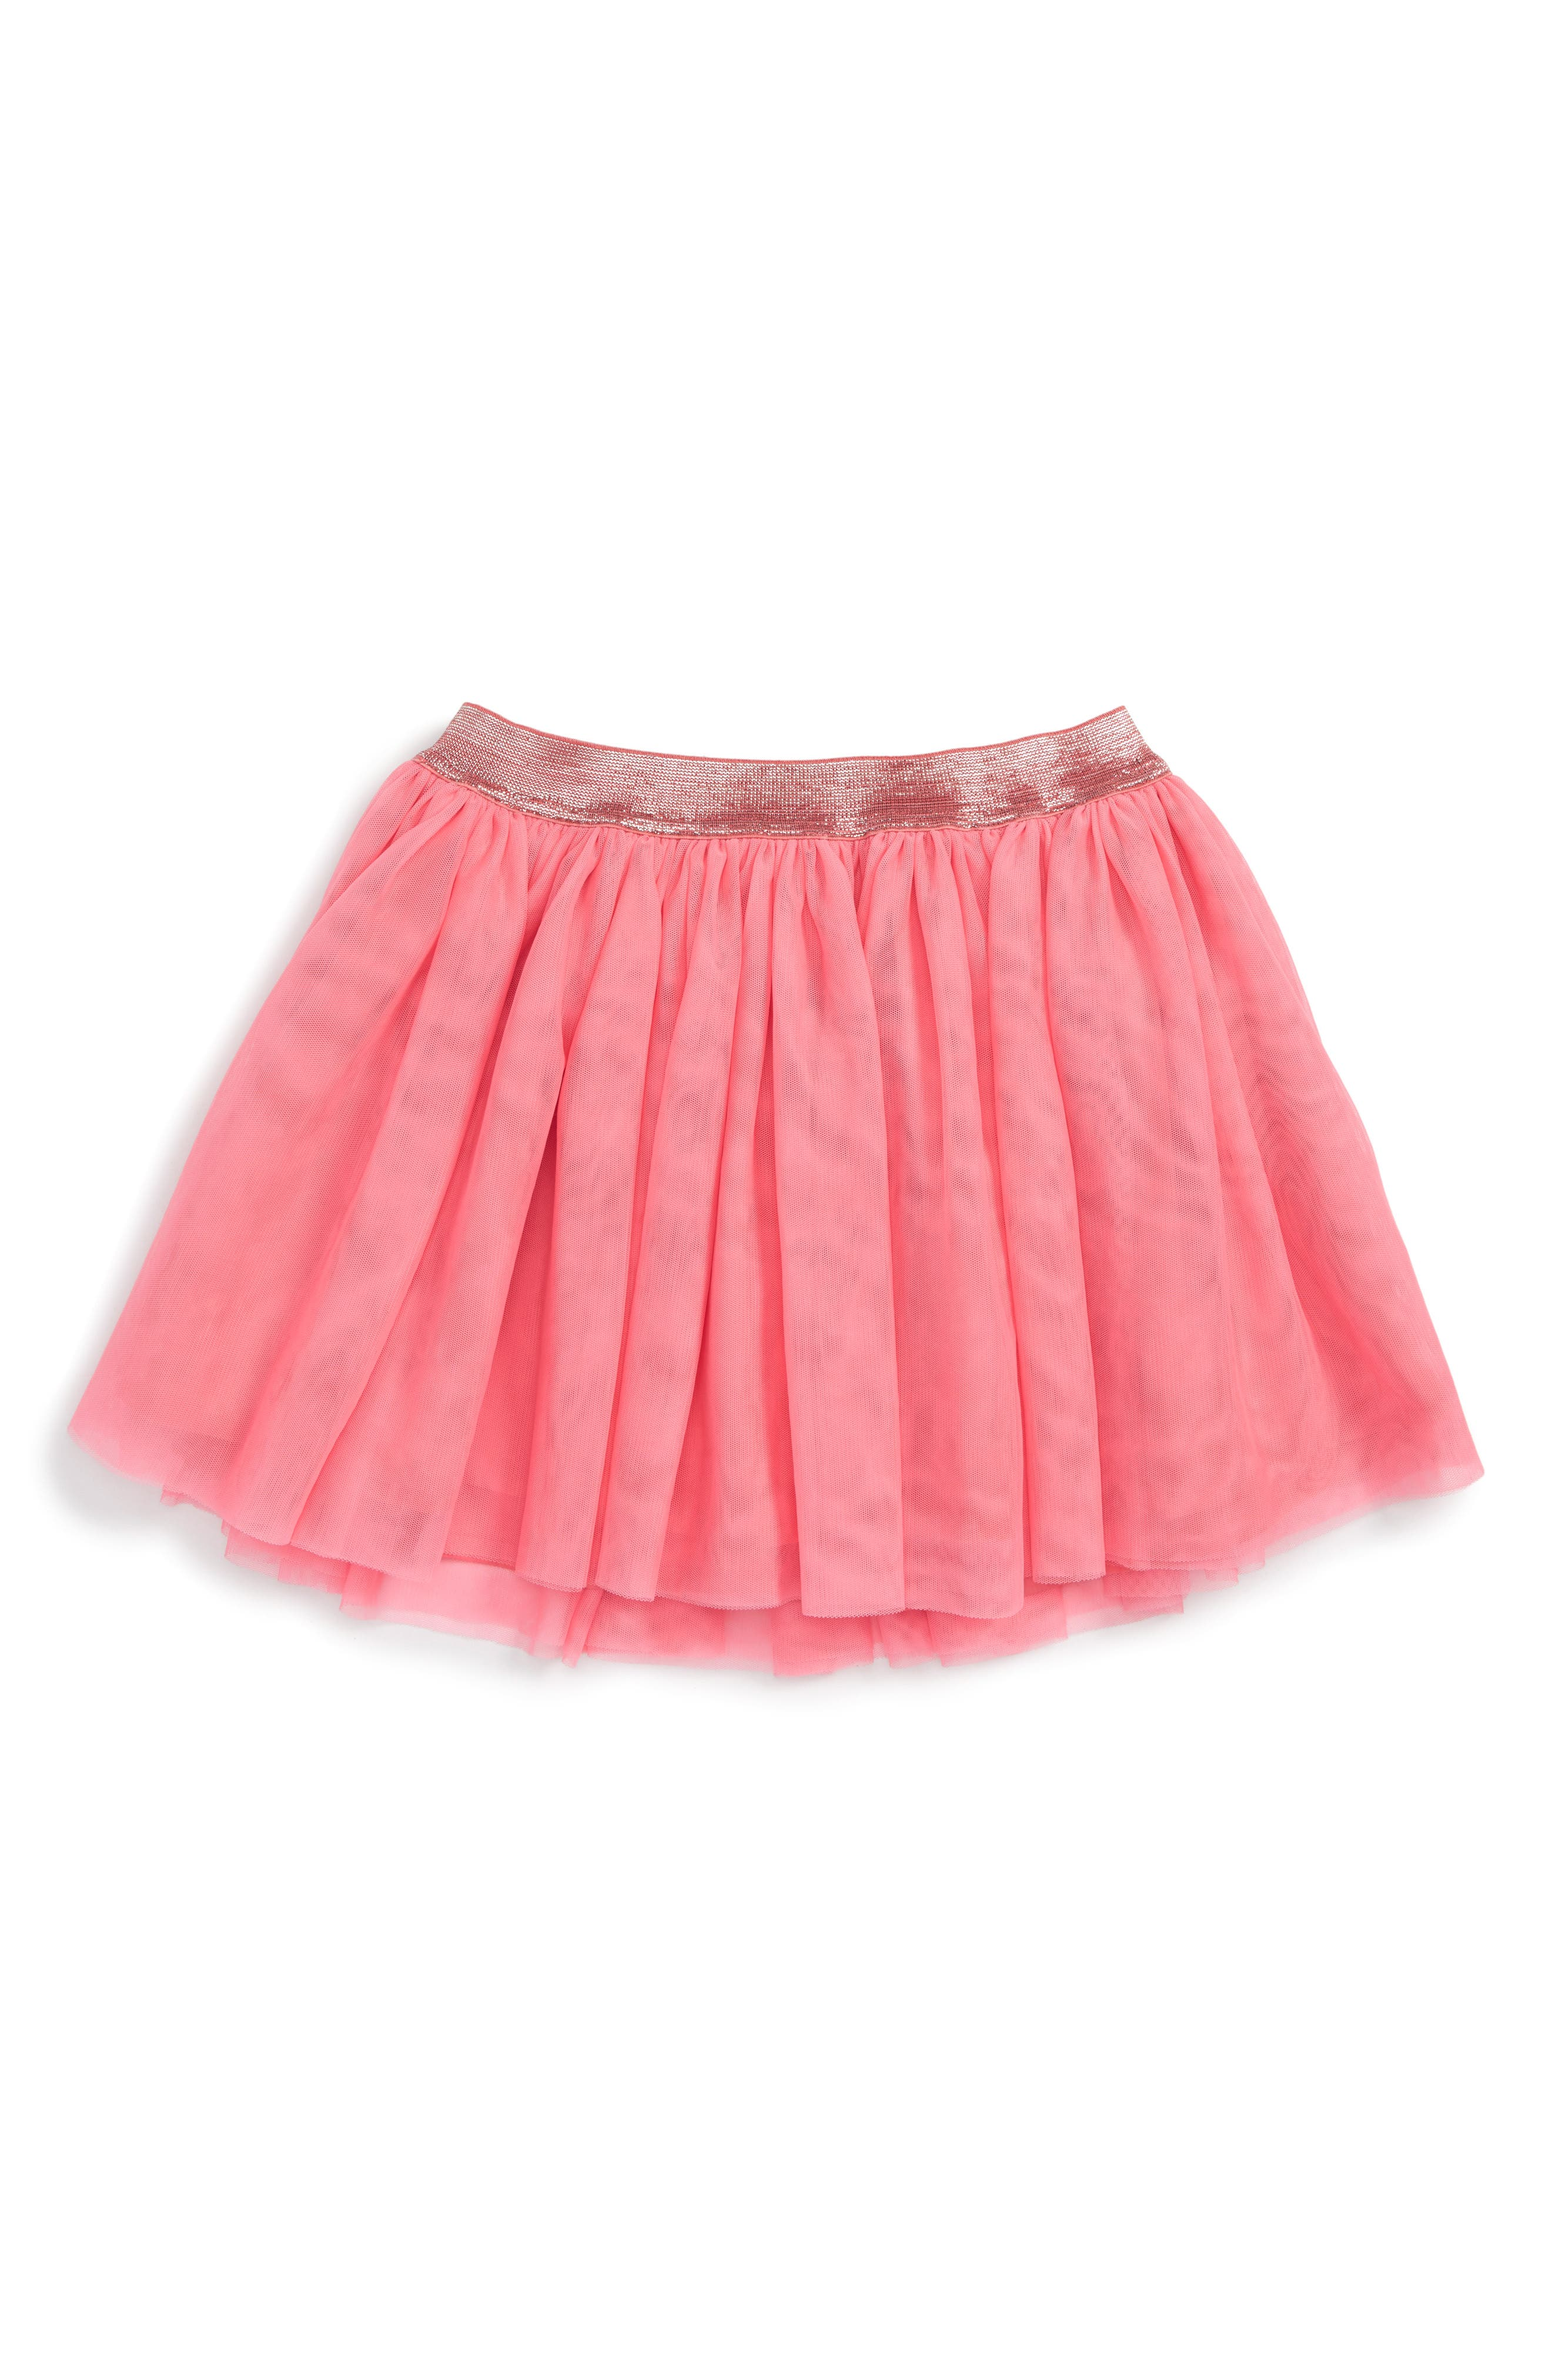 Main Image - Tucker + Tate Tulle Skirt (Toddler Girls, Little Girls & Big Girls)